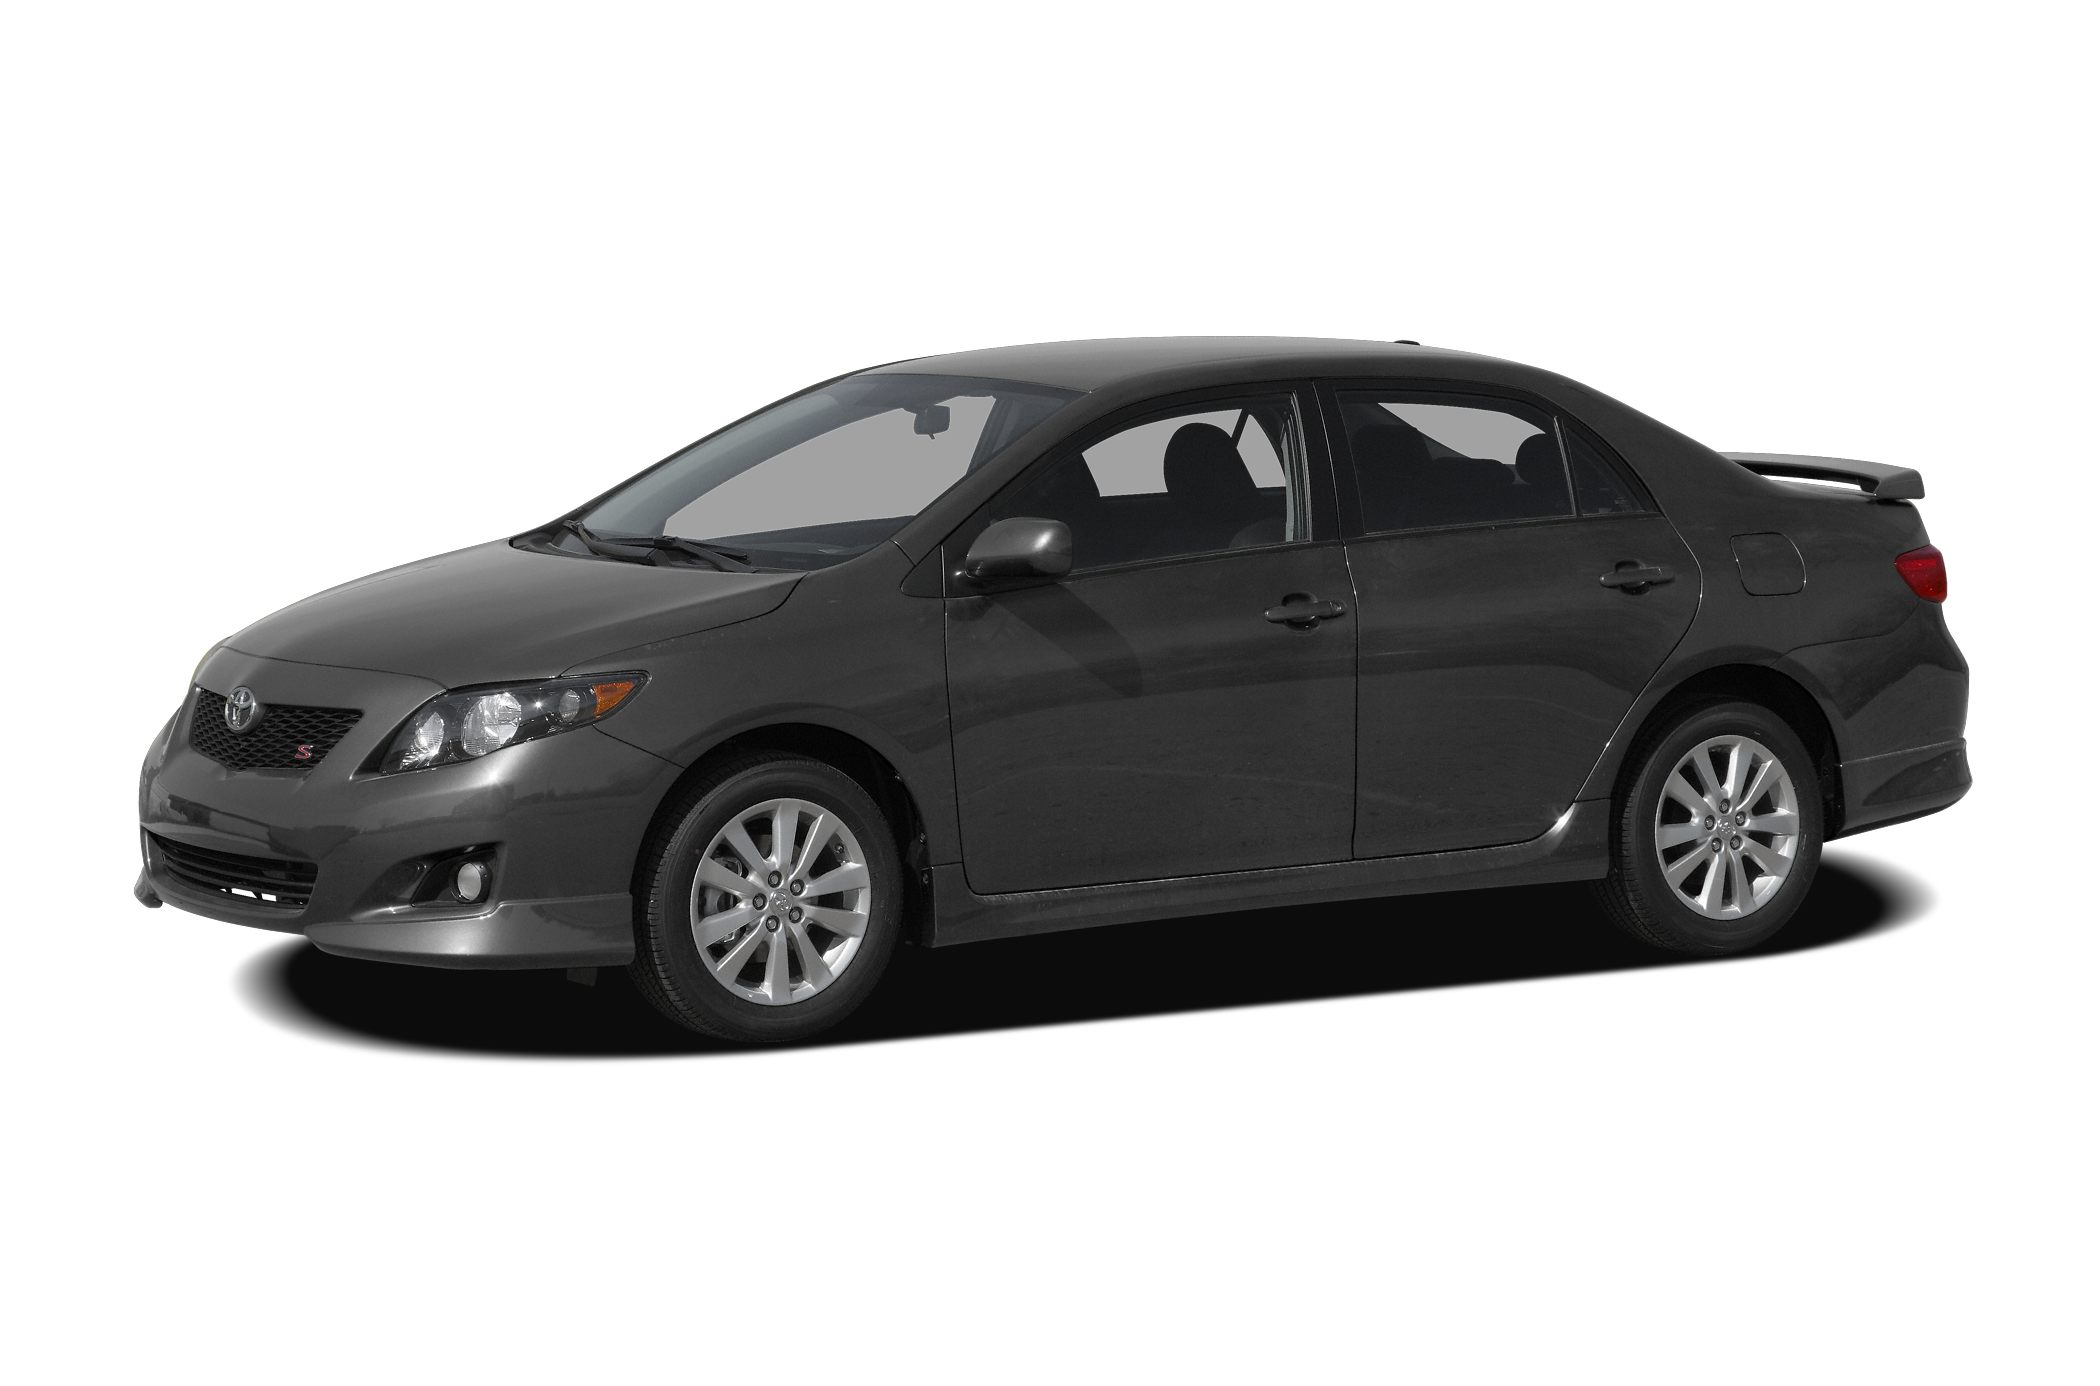 2009 Toyota Corolla XRS XRS trim FUEL EFFICIENT 30 MPG Hwy22 MPG City PRICED TO MOVE 1200 be